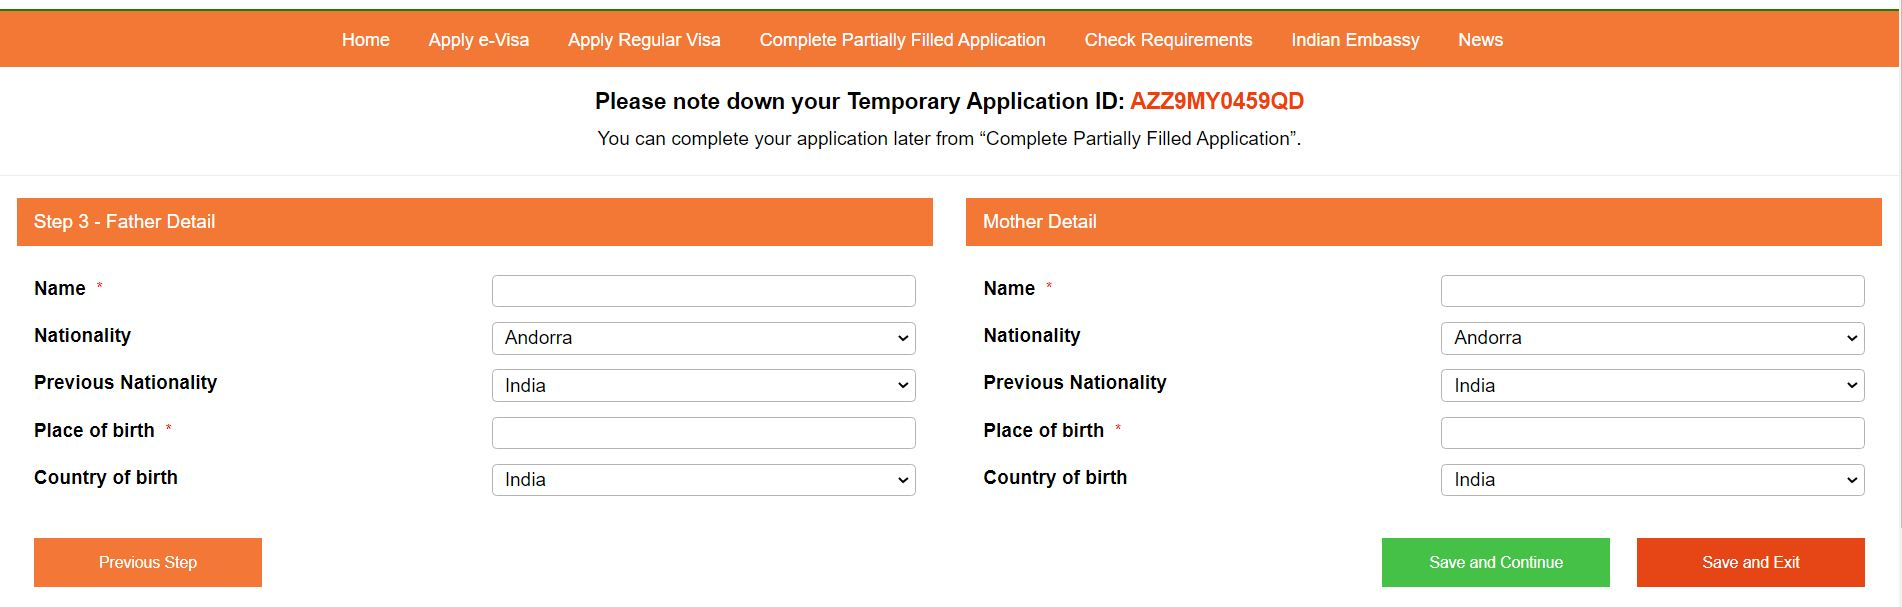 Indian visa form, provide applicant father and mother details